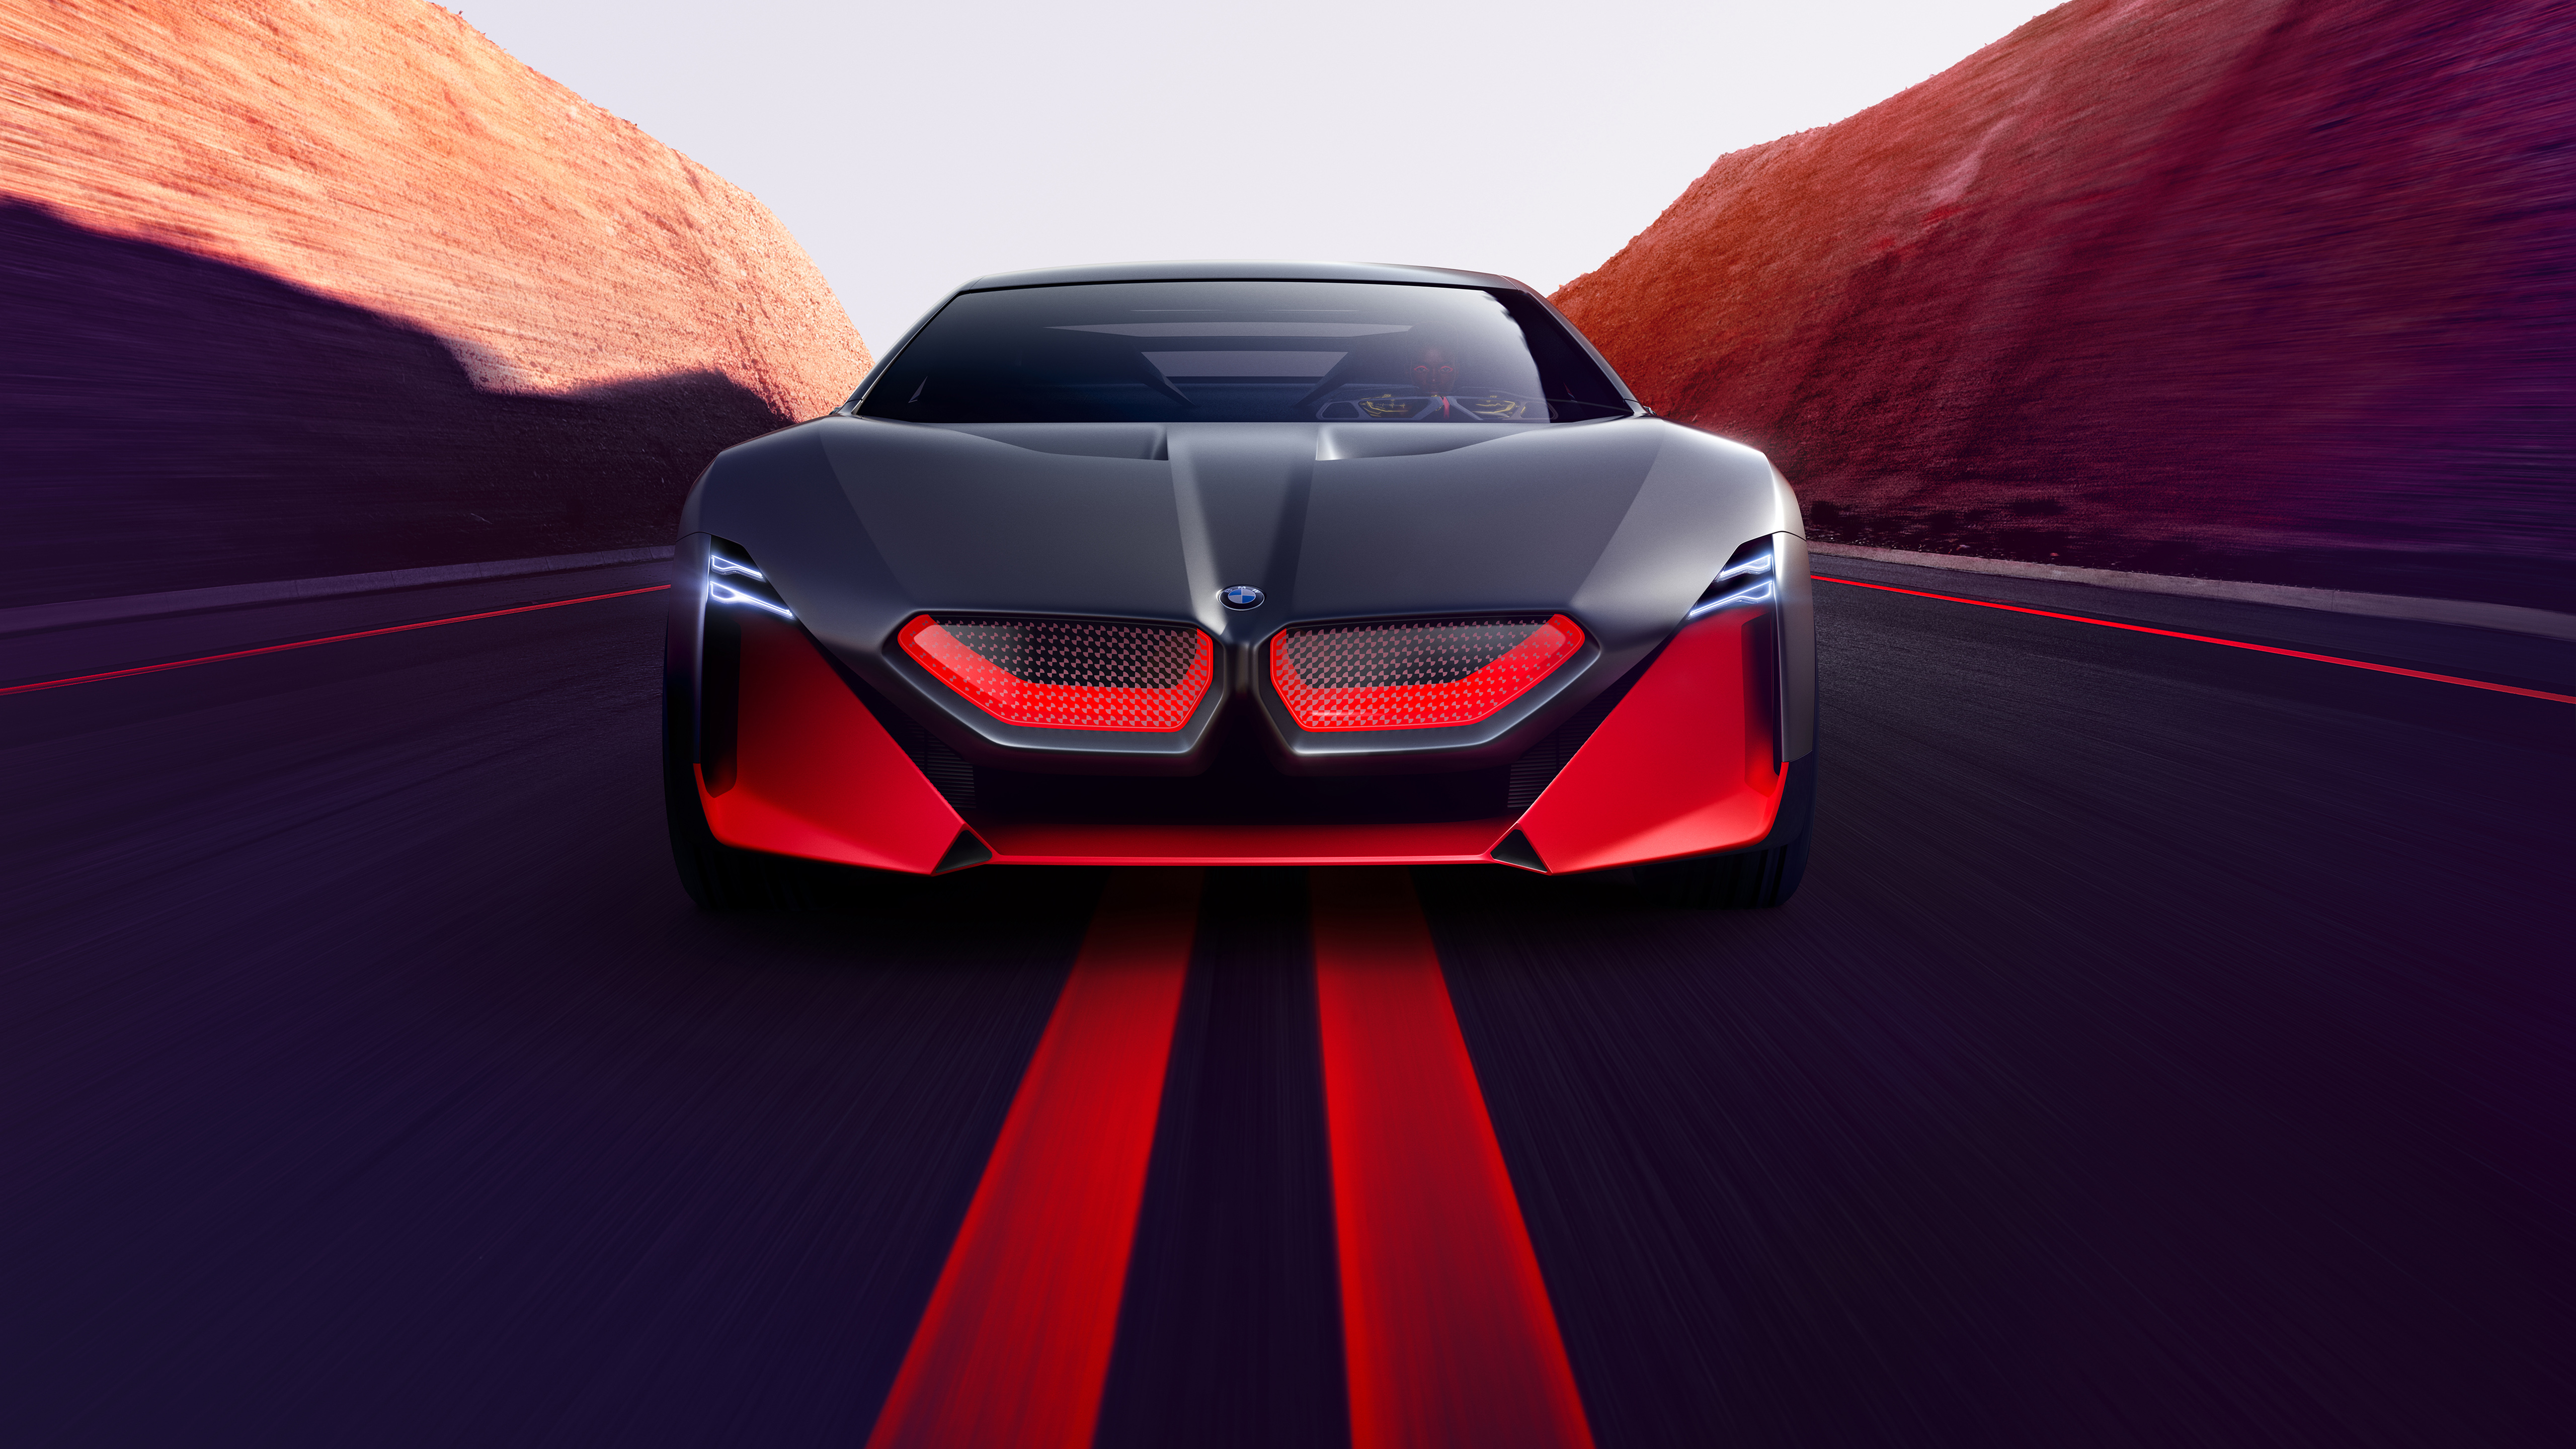 BMW Vision M NEXT 2019 4K Wallpaper HD Car Wallpapers ID 12813 5120x2880